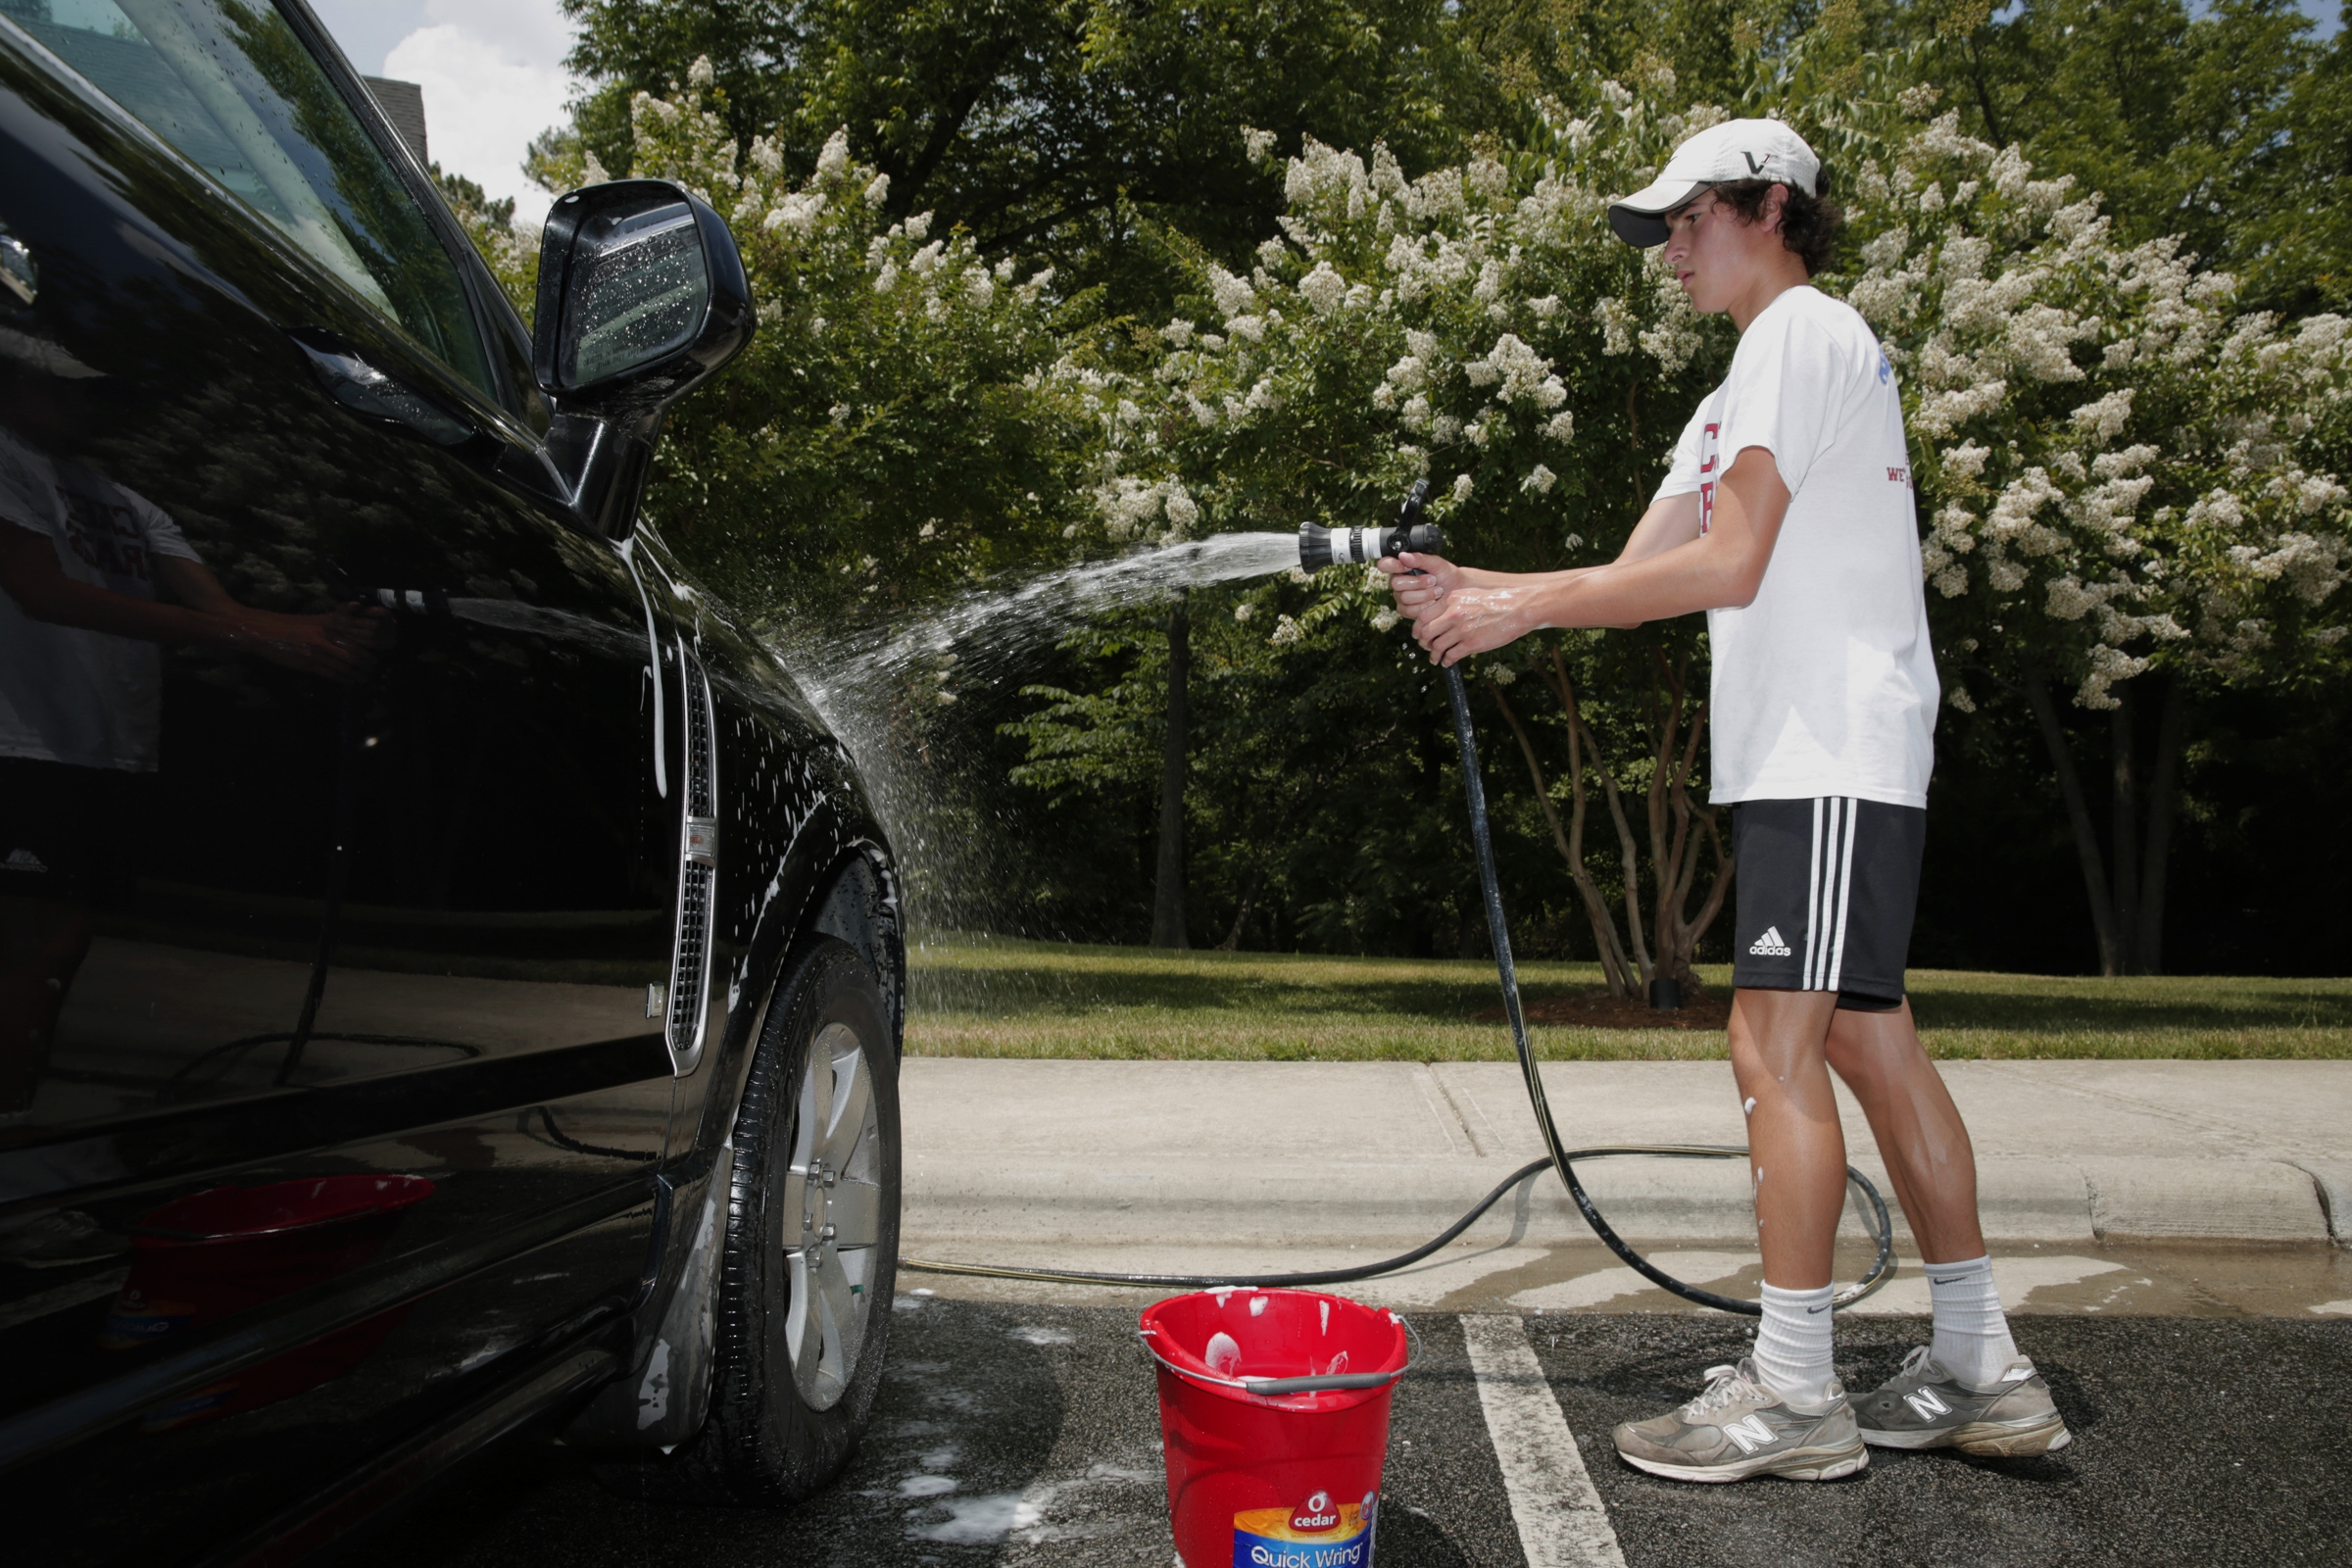 "Hunter-John Hurst, 16, of Holly Springs, N.C., washes a car as part of a detailing service he started after having trouble finding a summer job. He charges $35 to $45 for an hour's work per vehicle, ""and I can make more money than I would at a regular job."""